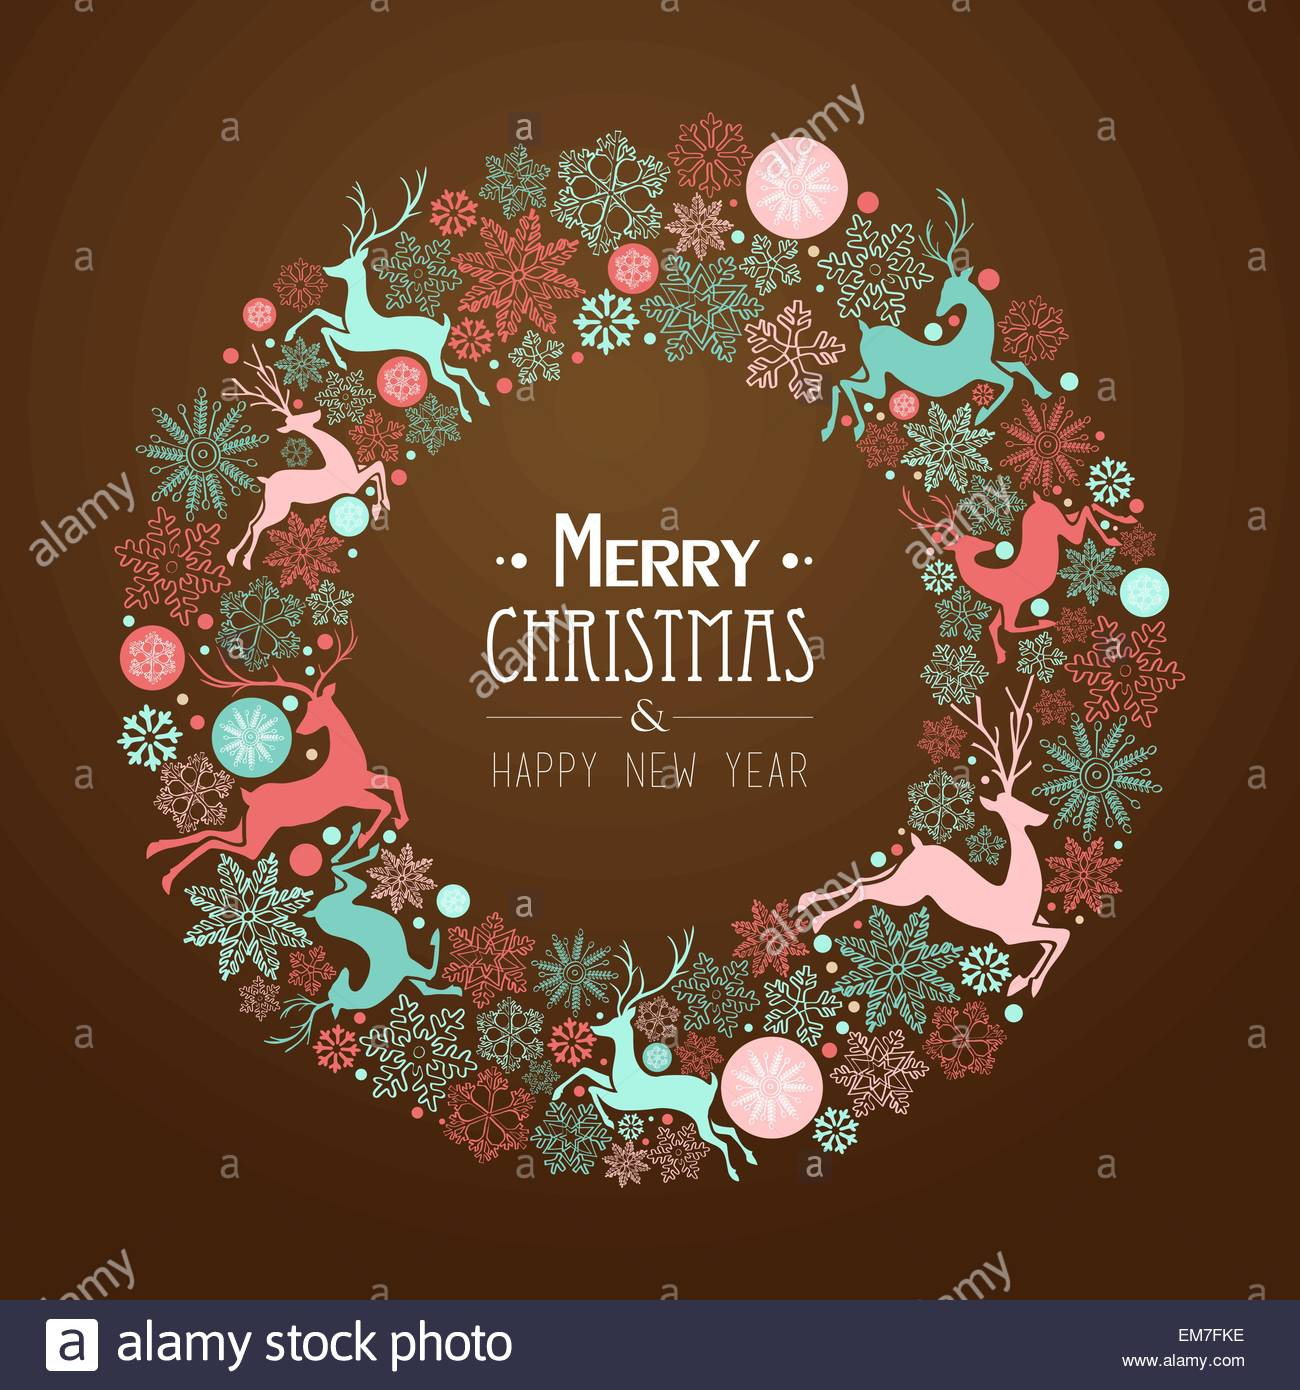 Merry christmas and happy new year greeting card stock vector art merry christmas and happy new year greeting card kristyandbryce Image collections